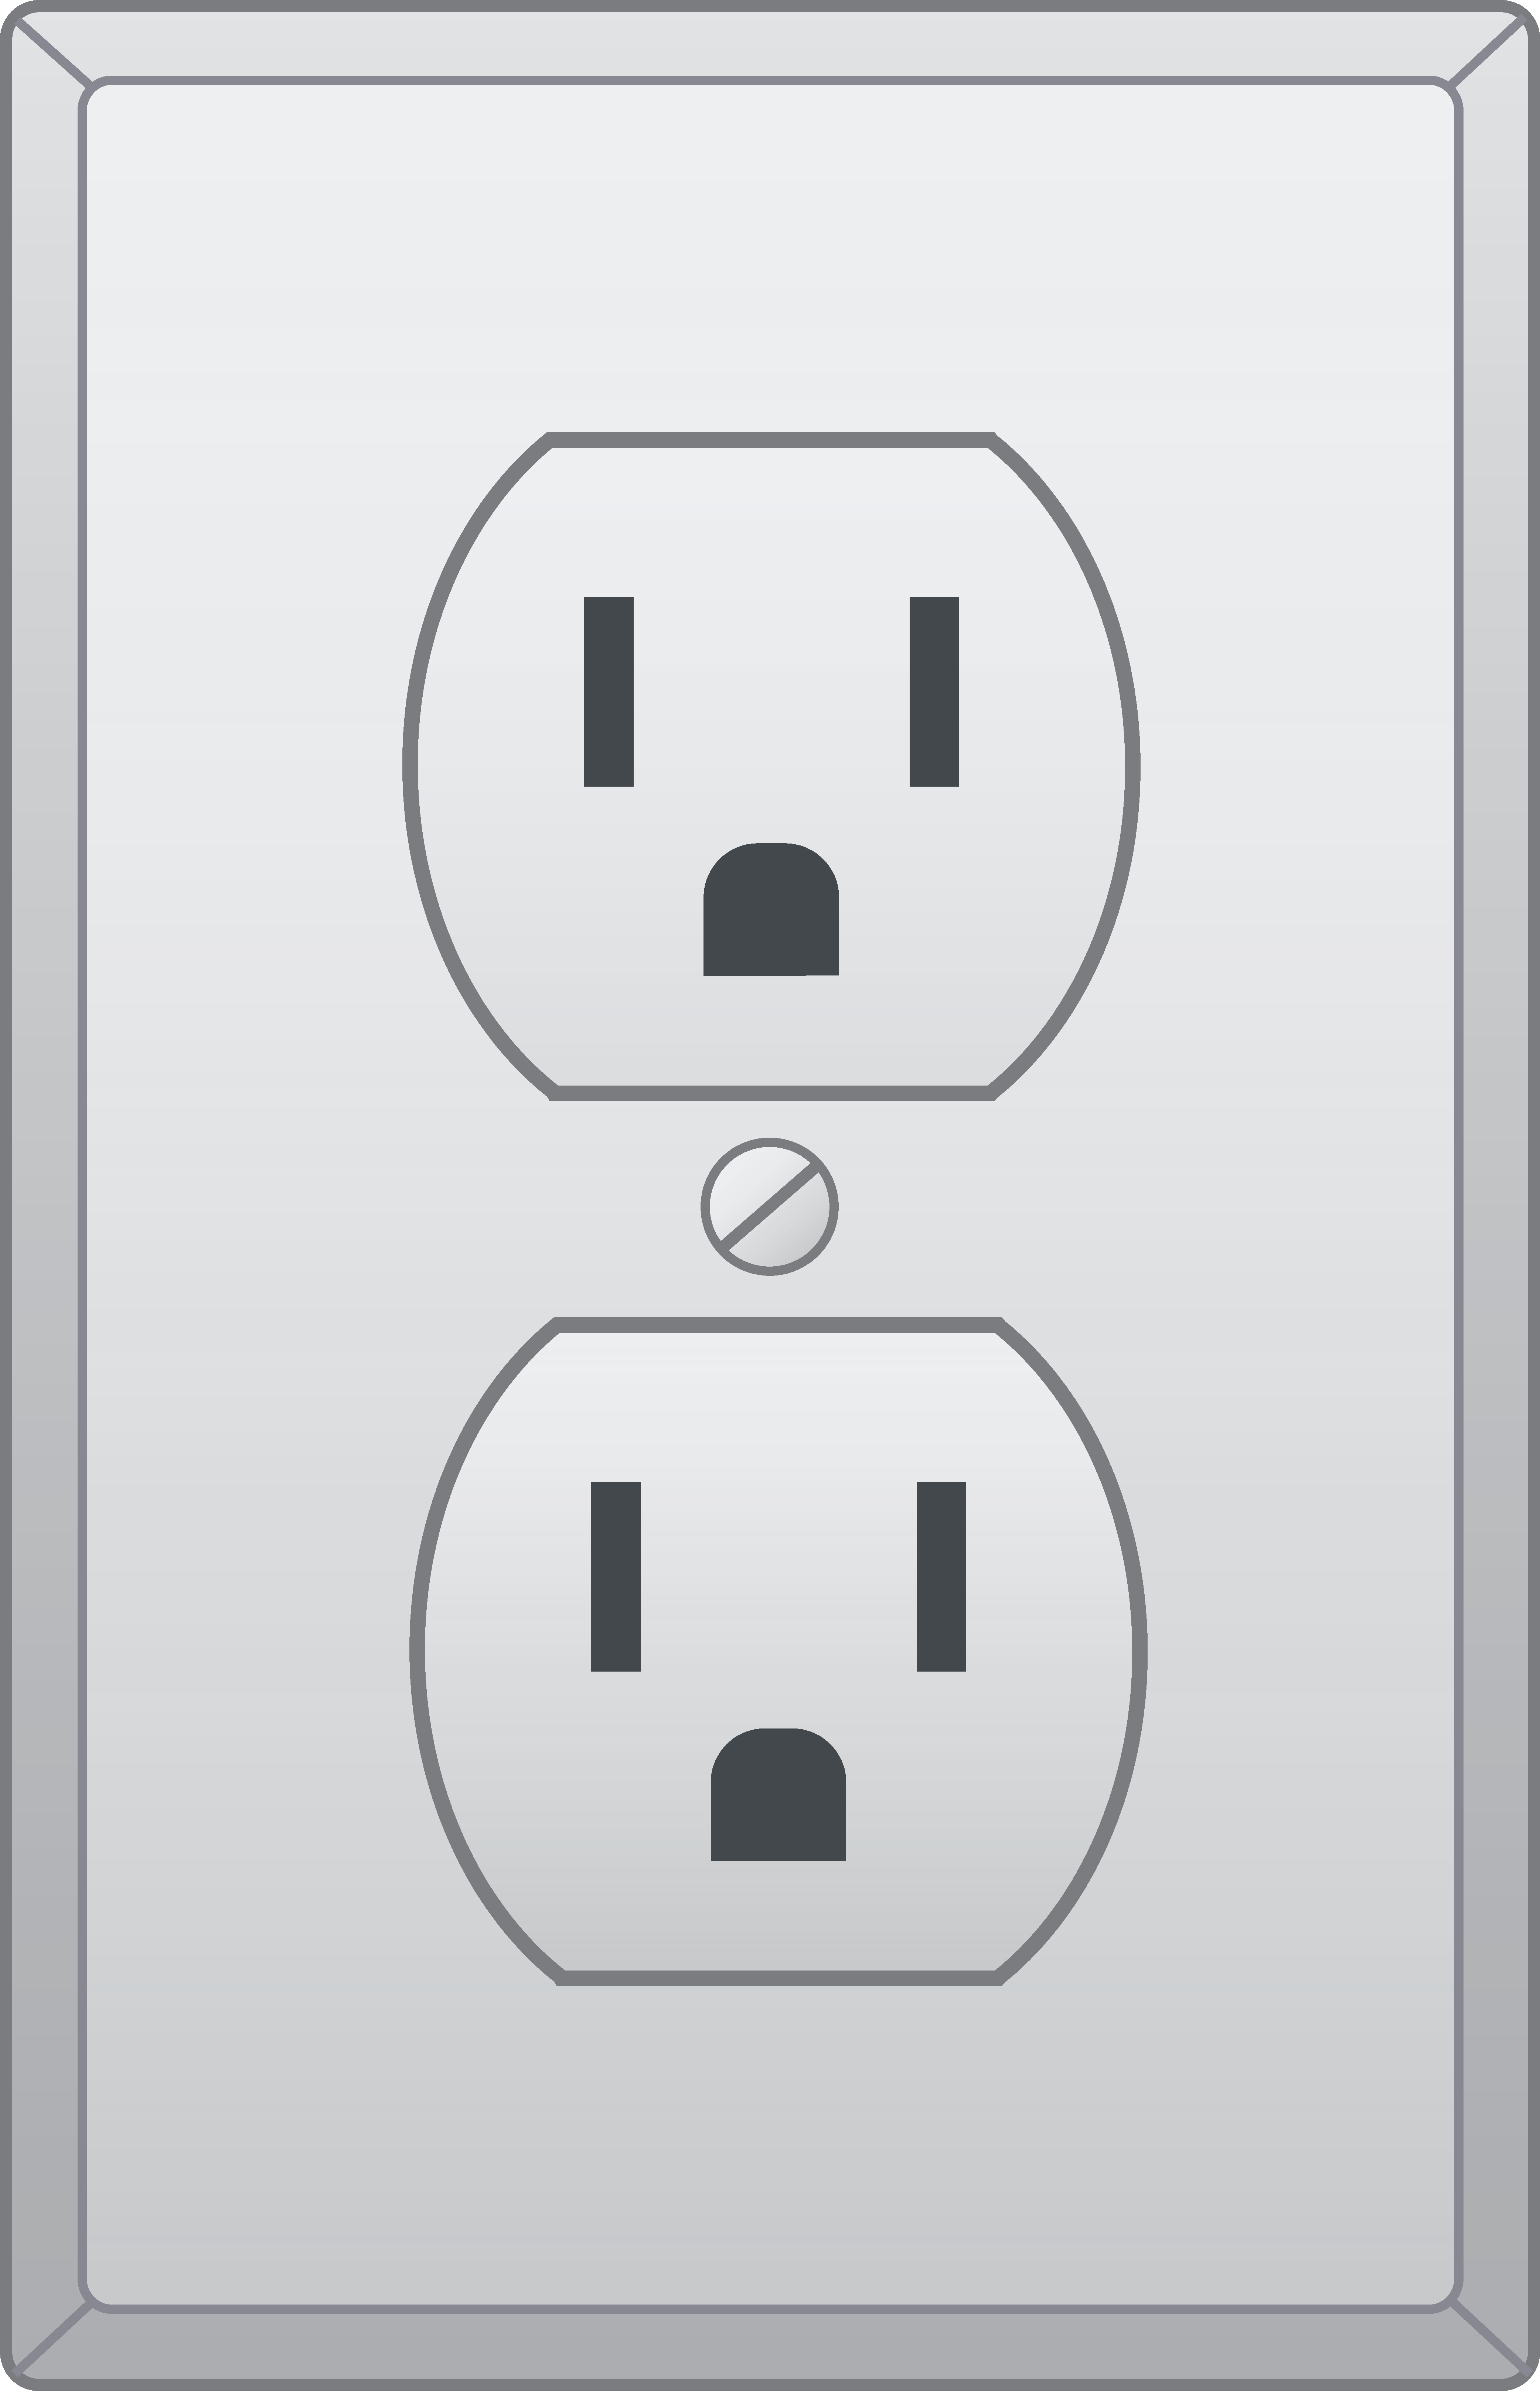 Electric clipart power source. Plug symbol png with